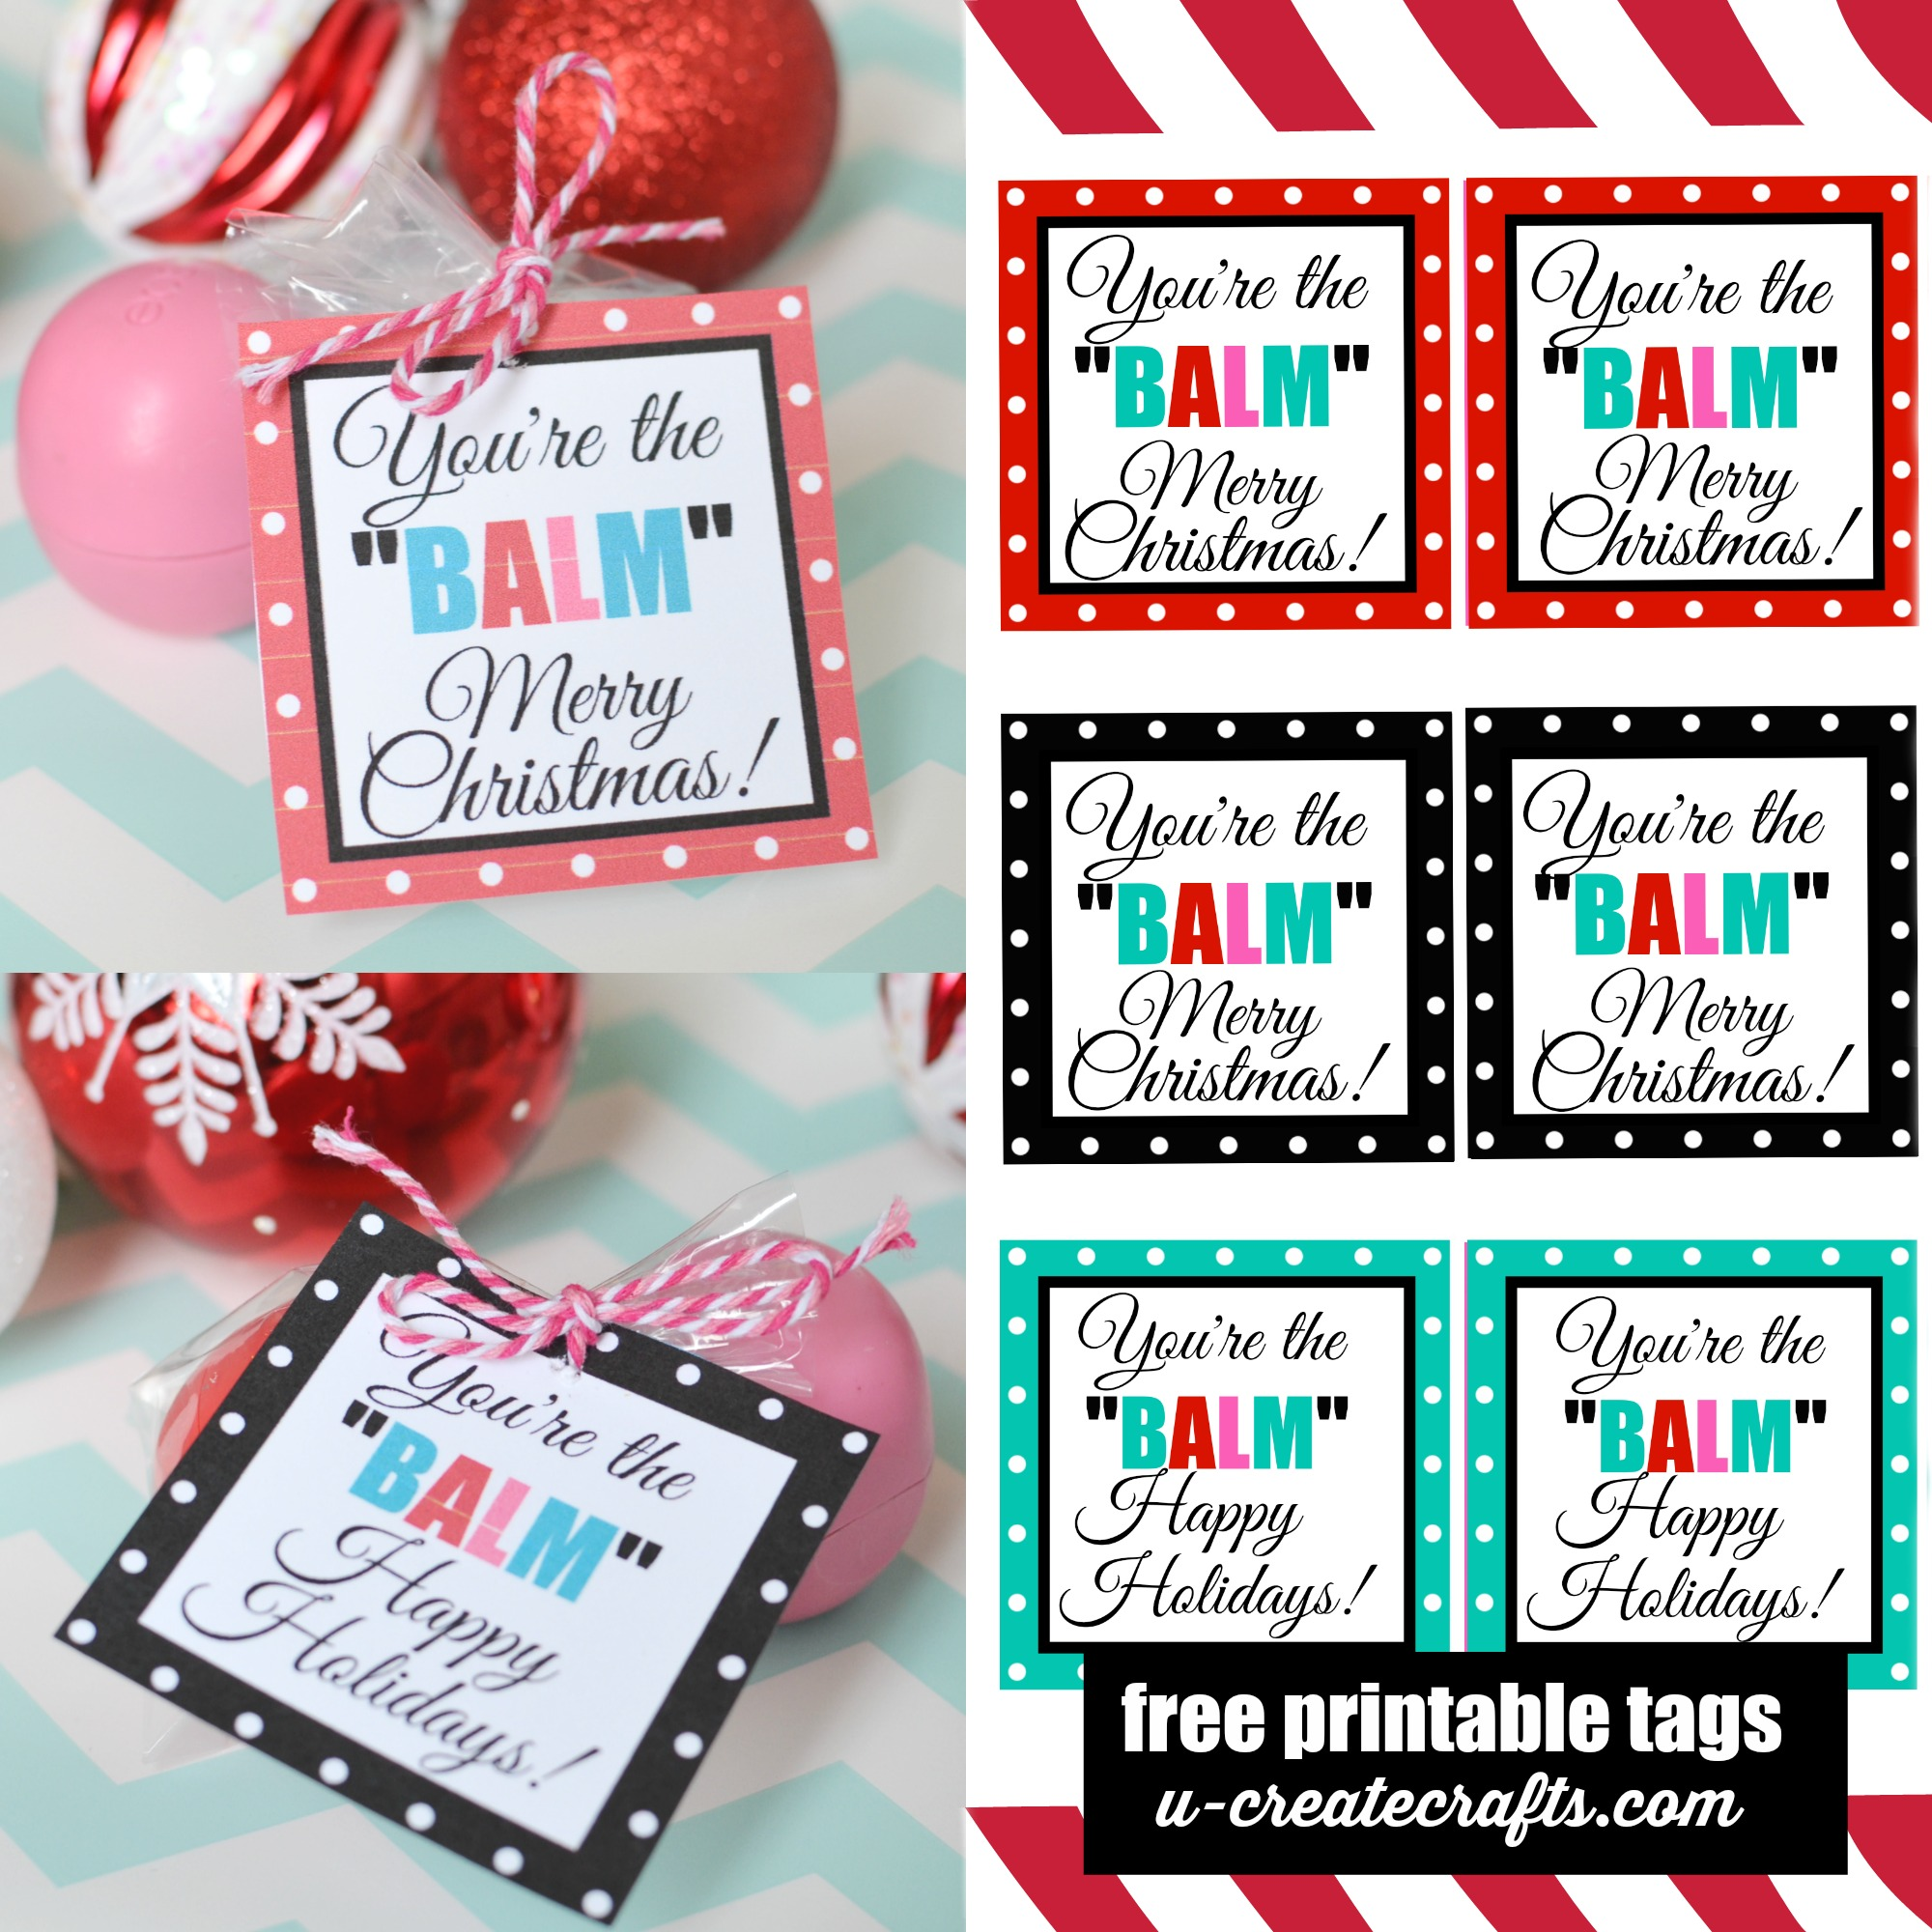 photo relating to You're the Balm Teacher Free Printable referred to as Youre the BALM - Xmas Printables - U Deliver